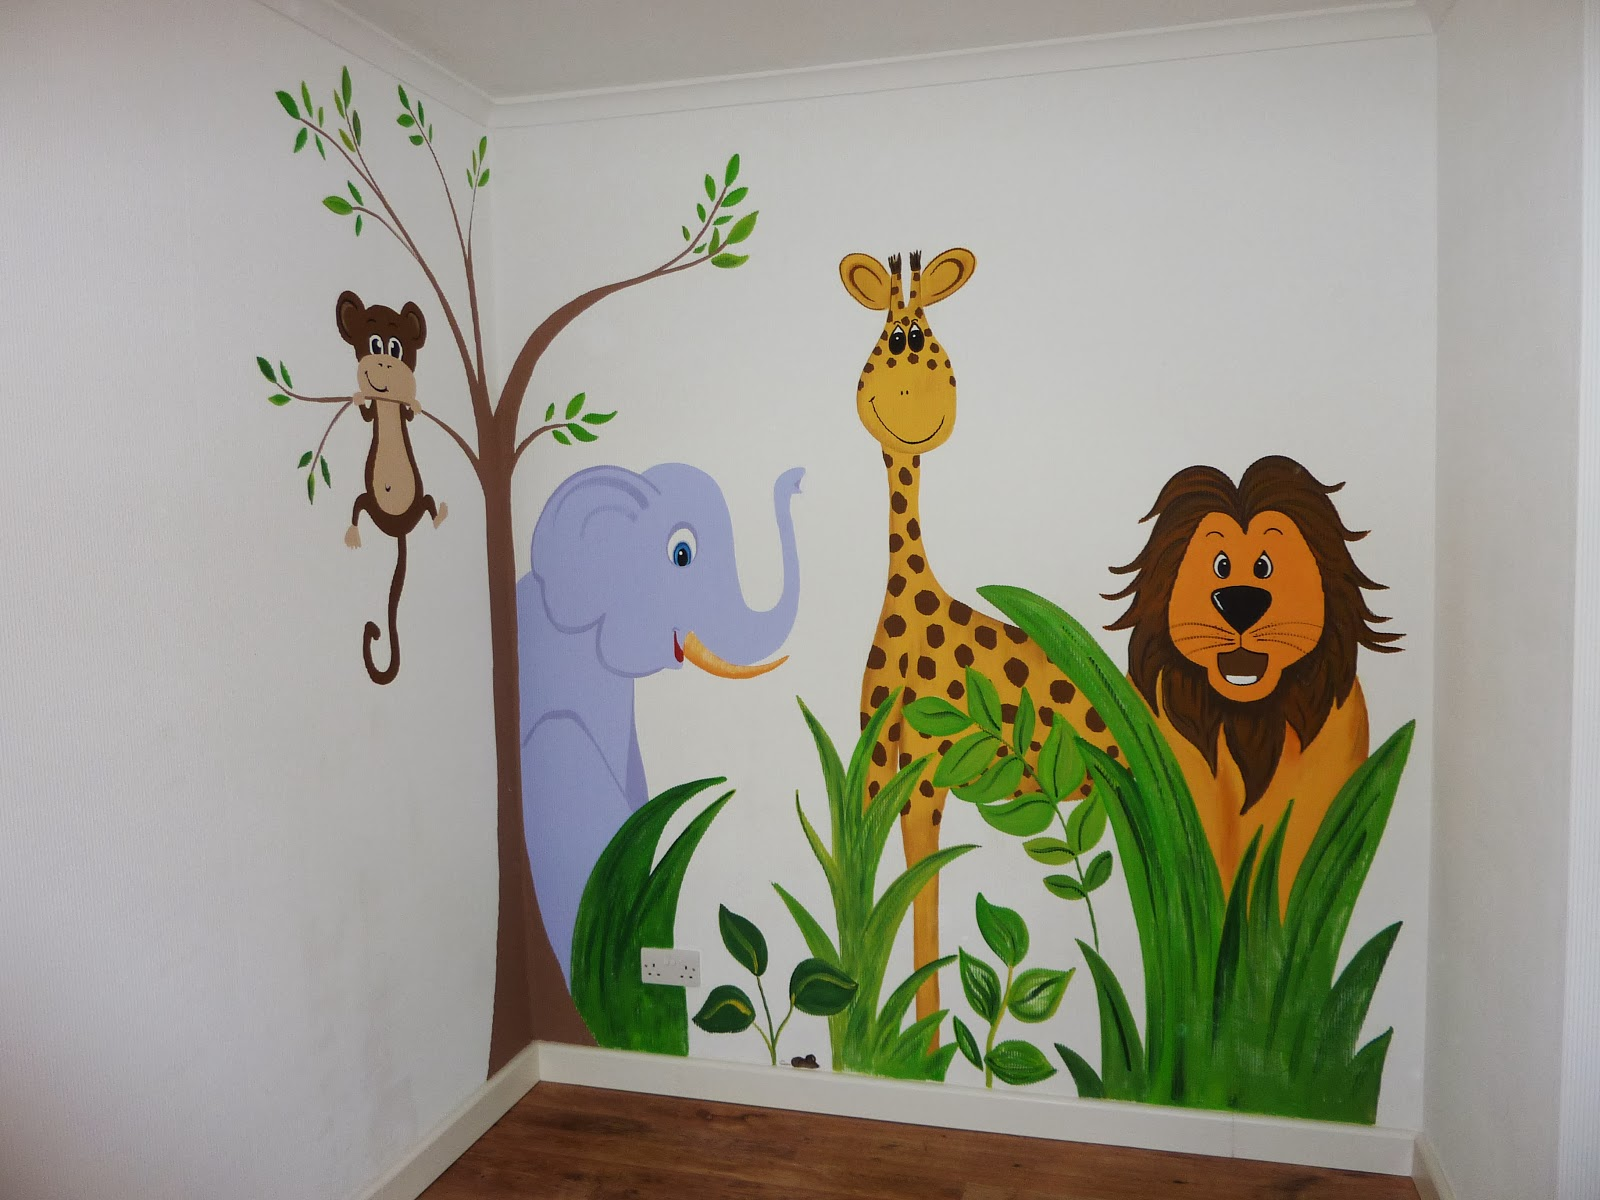 joanna perry top mural artist hand painting murals artist yonne latiers painted murals in the puppy kennel